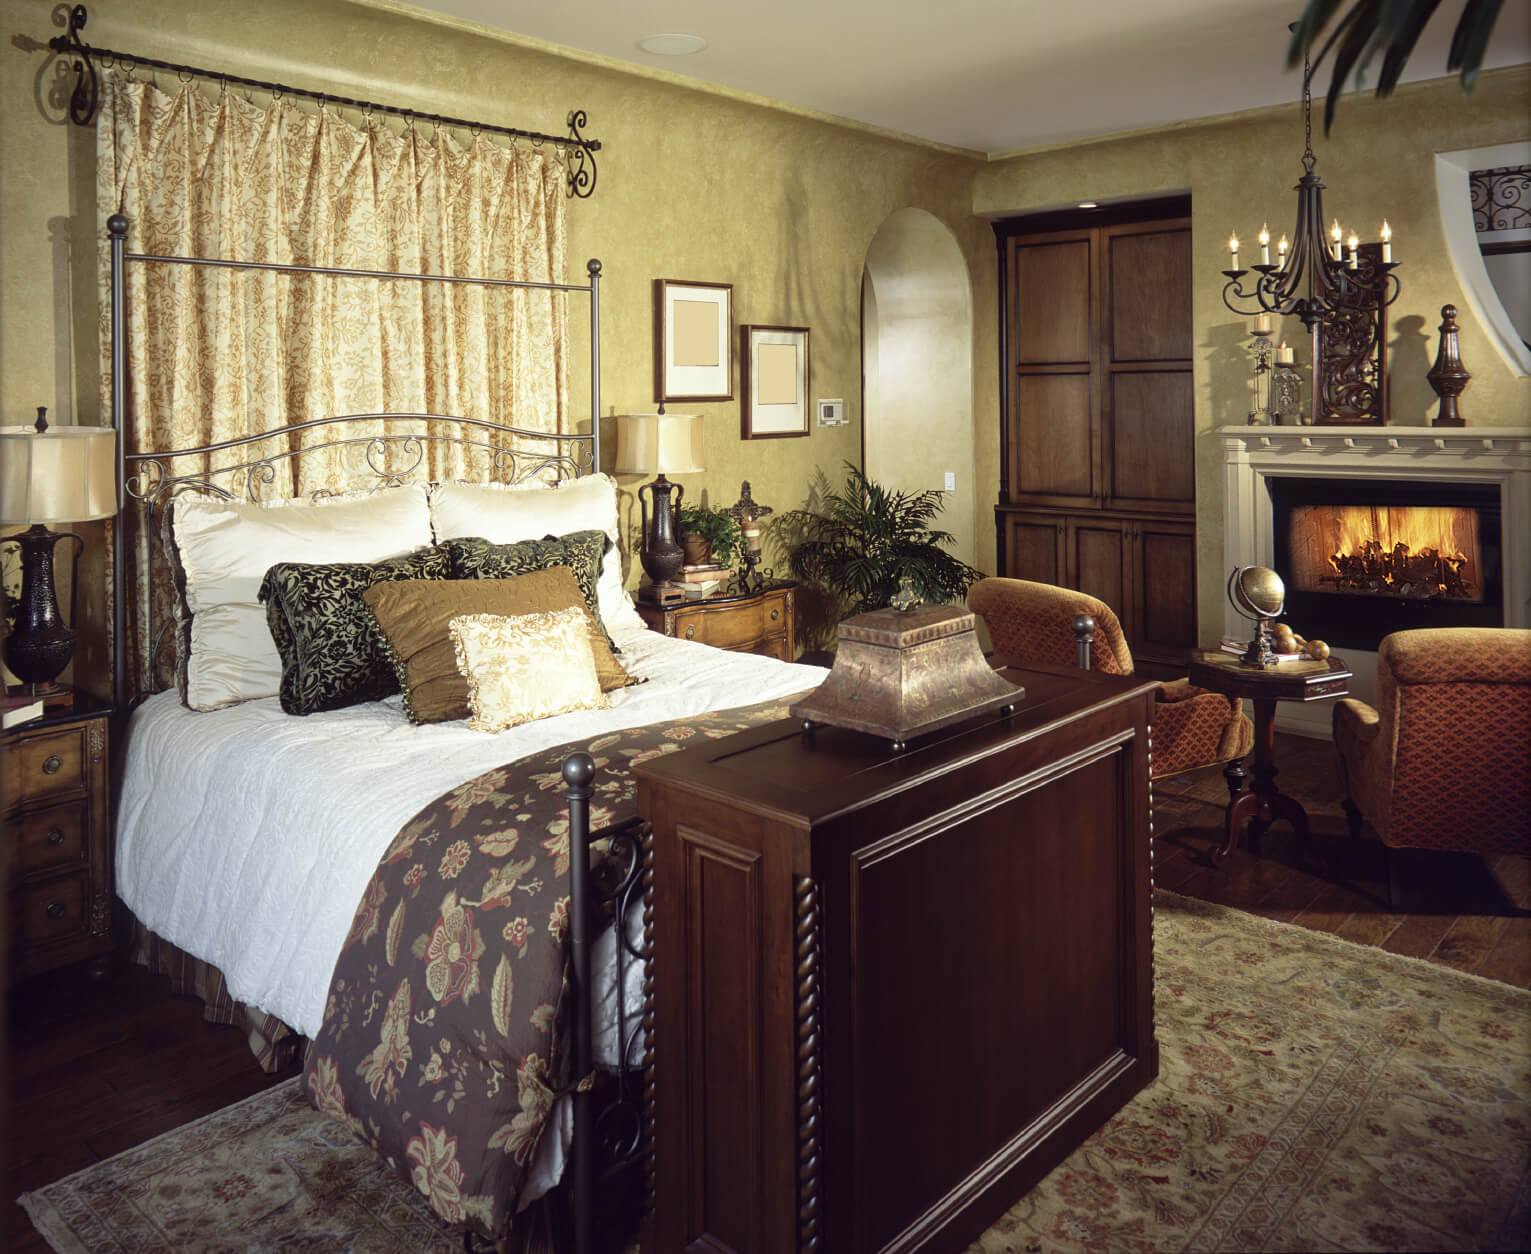 Master bedroom ideas with wallpaper accent wall images with a golden pattern, two orange seats in front of the fireplace and a wood small table. It has a massive stand at the foot of the queen sized metallic frame bed that hides the TV.